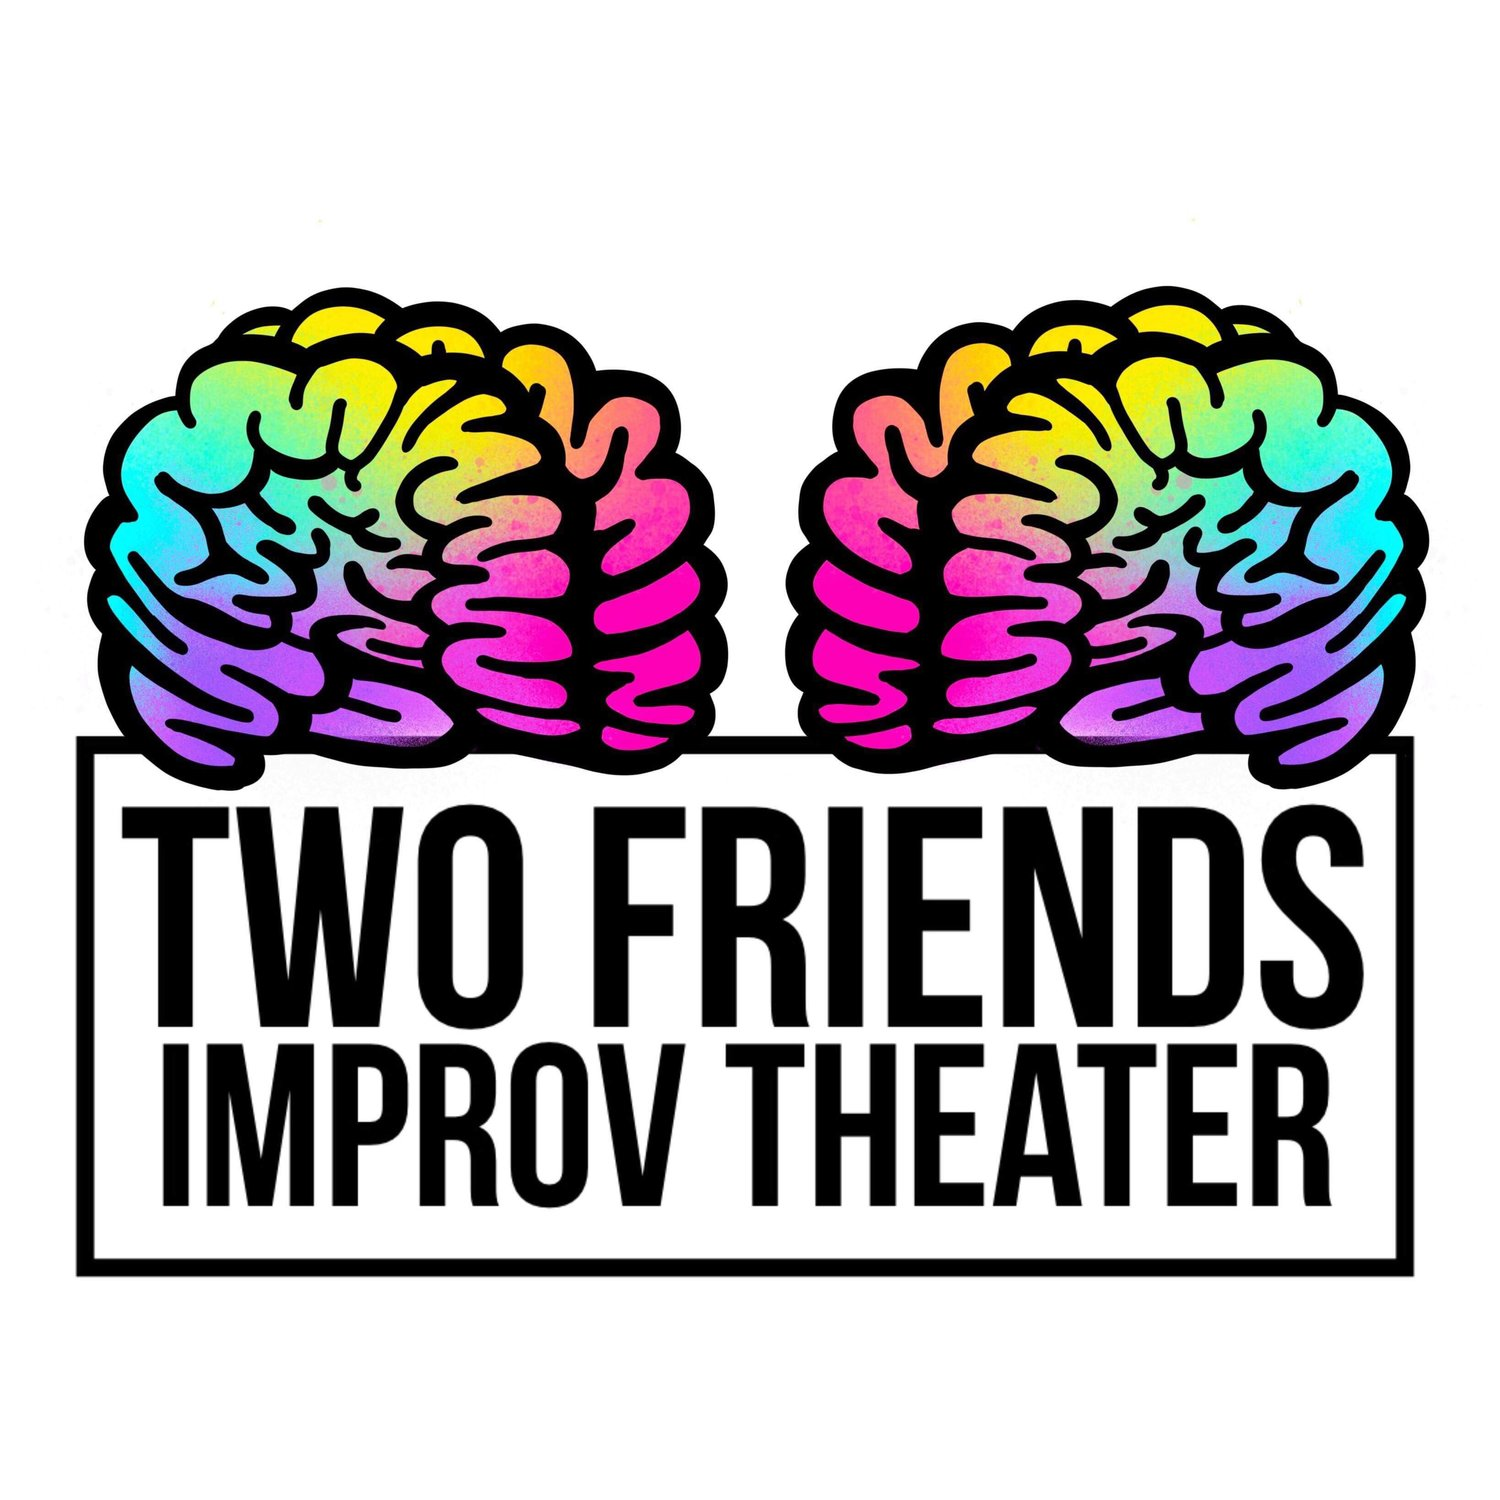 Two Friends Improv Theater